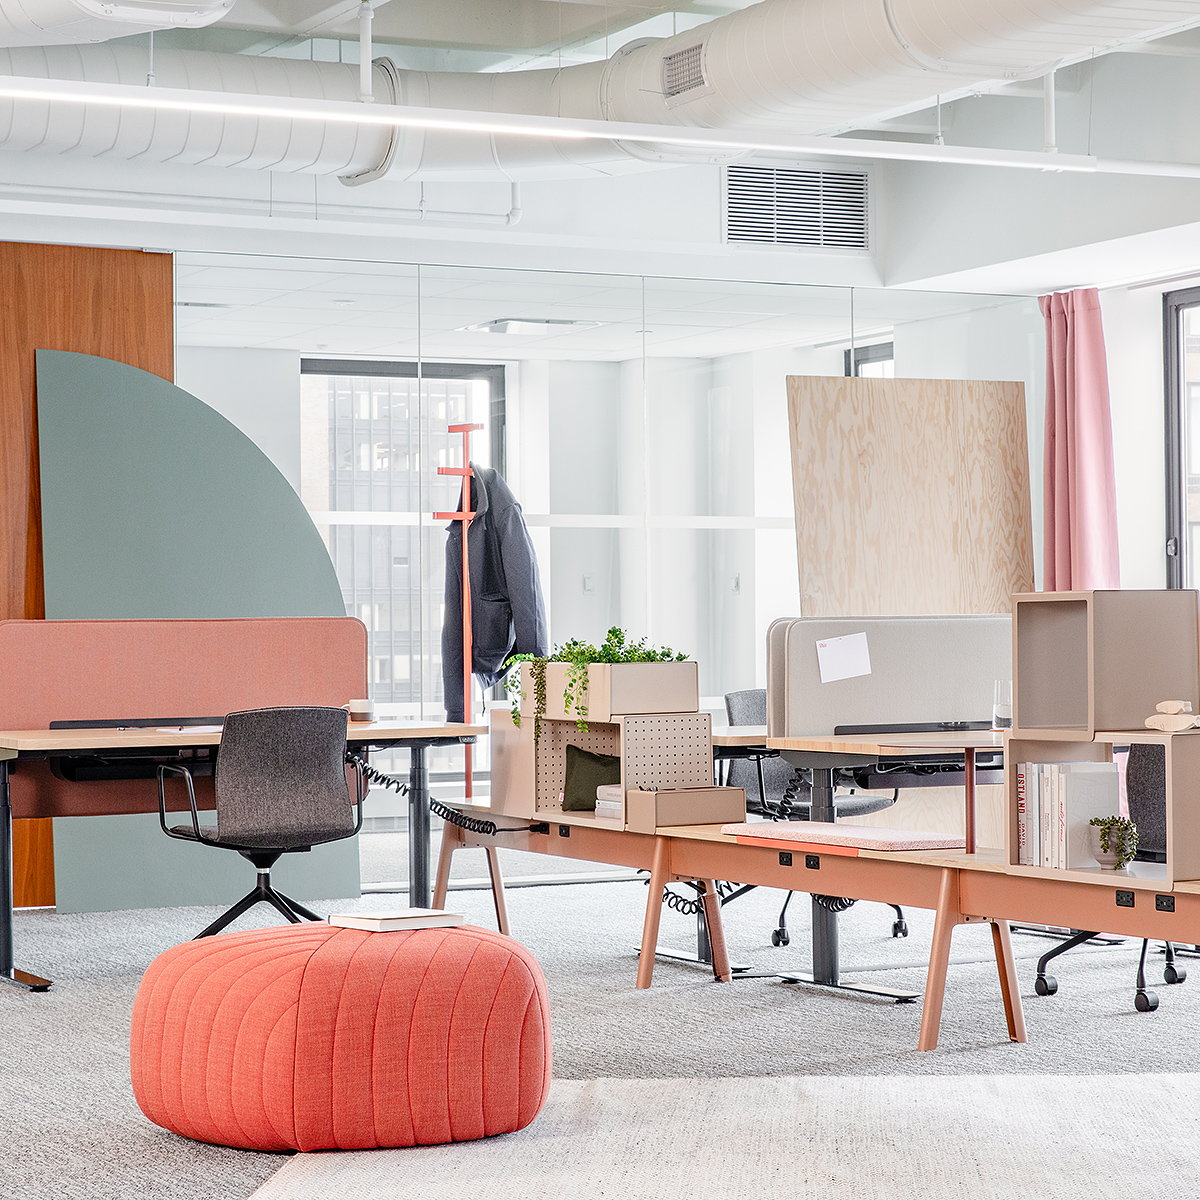 Pair Launches New Personalizable Workplace System 'Olli'